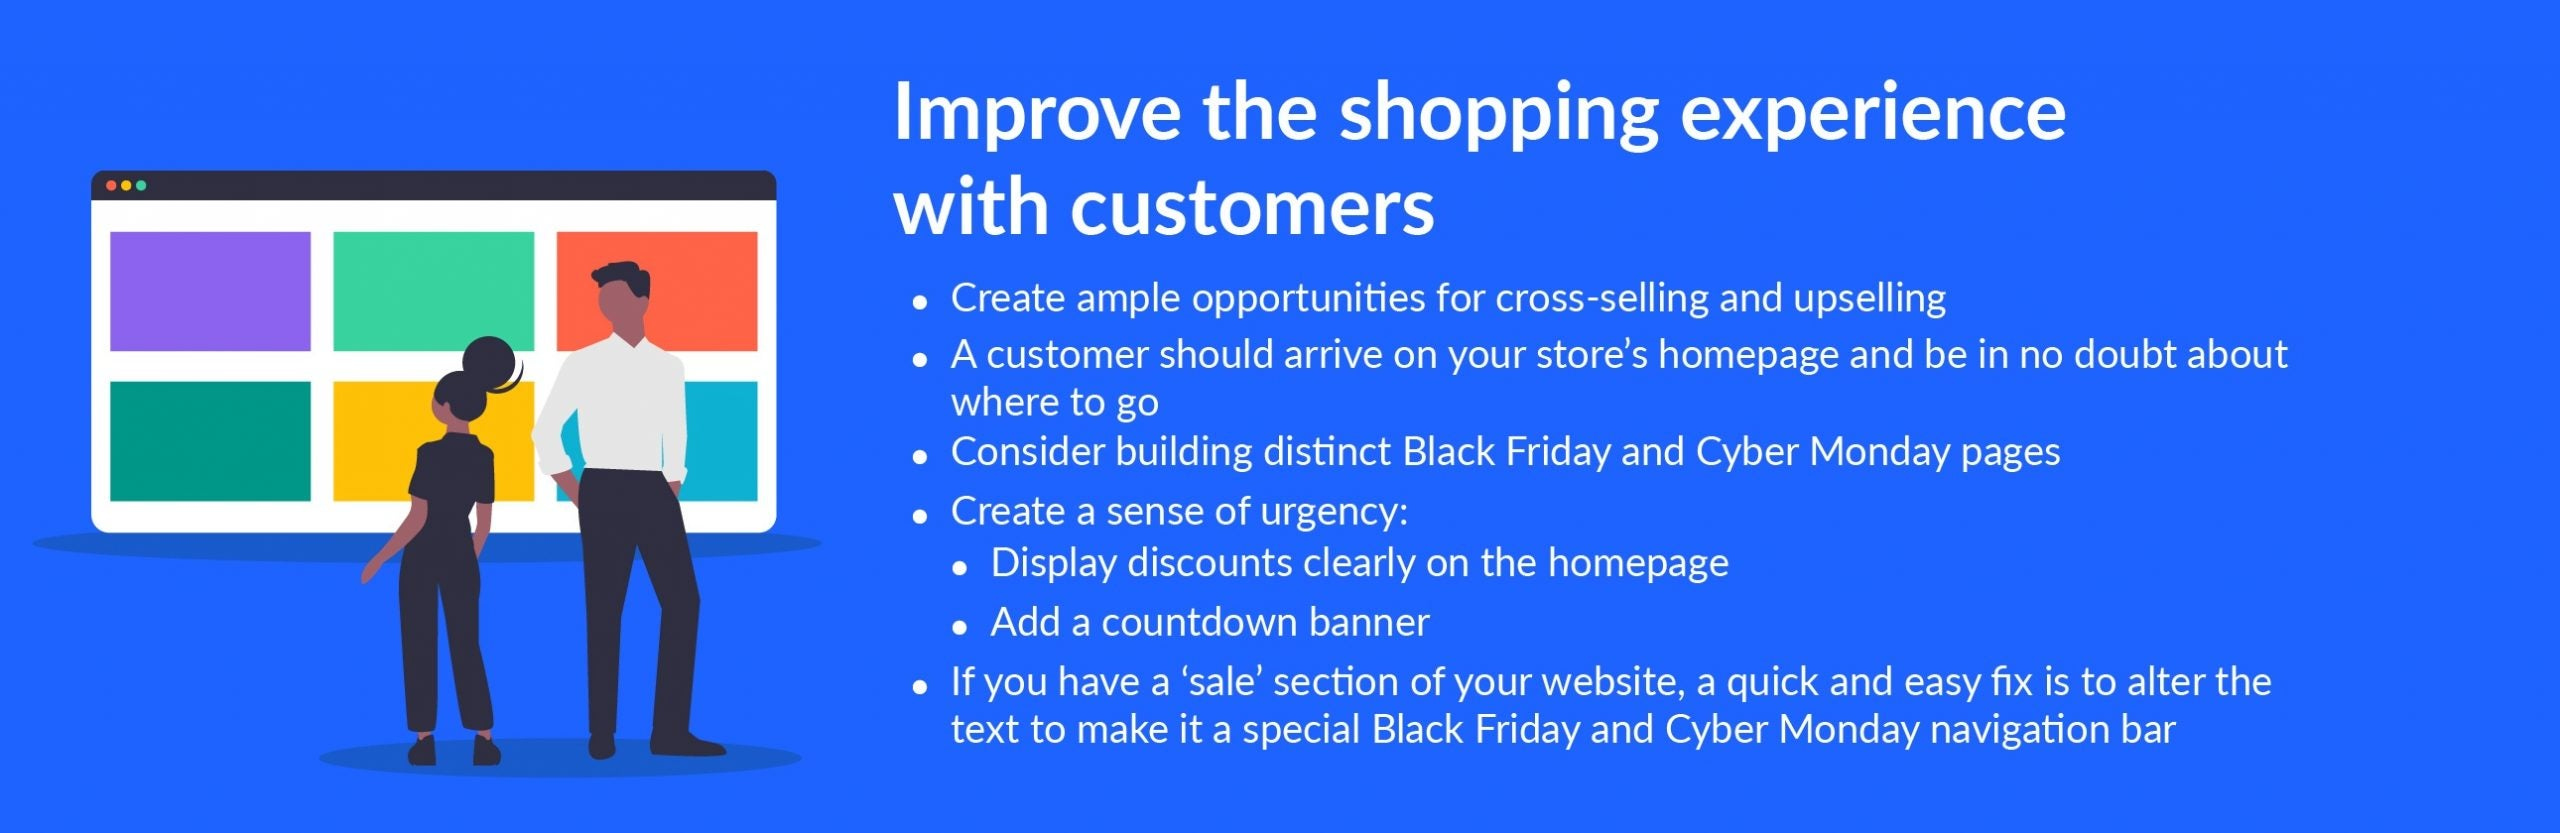 black friday tip improve shopping experience